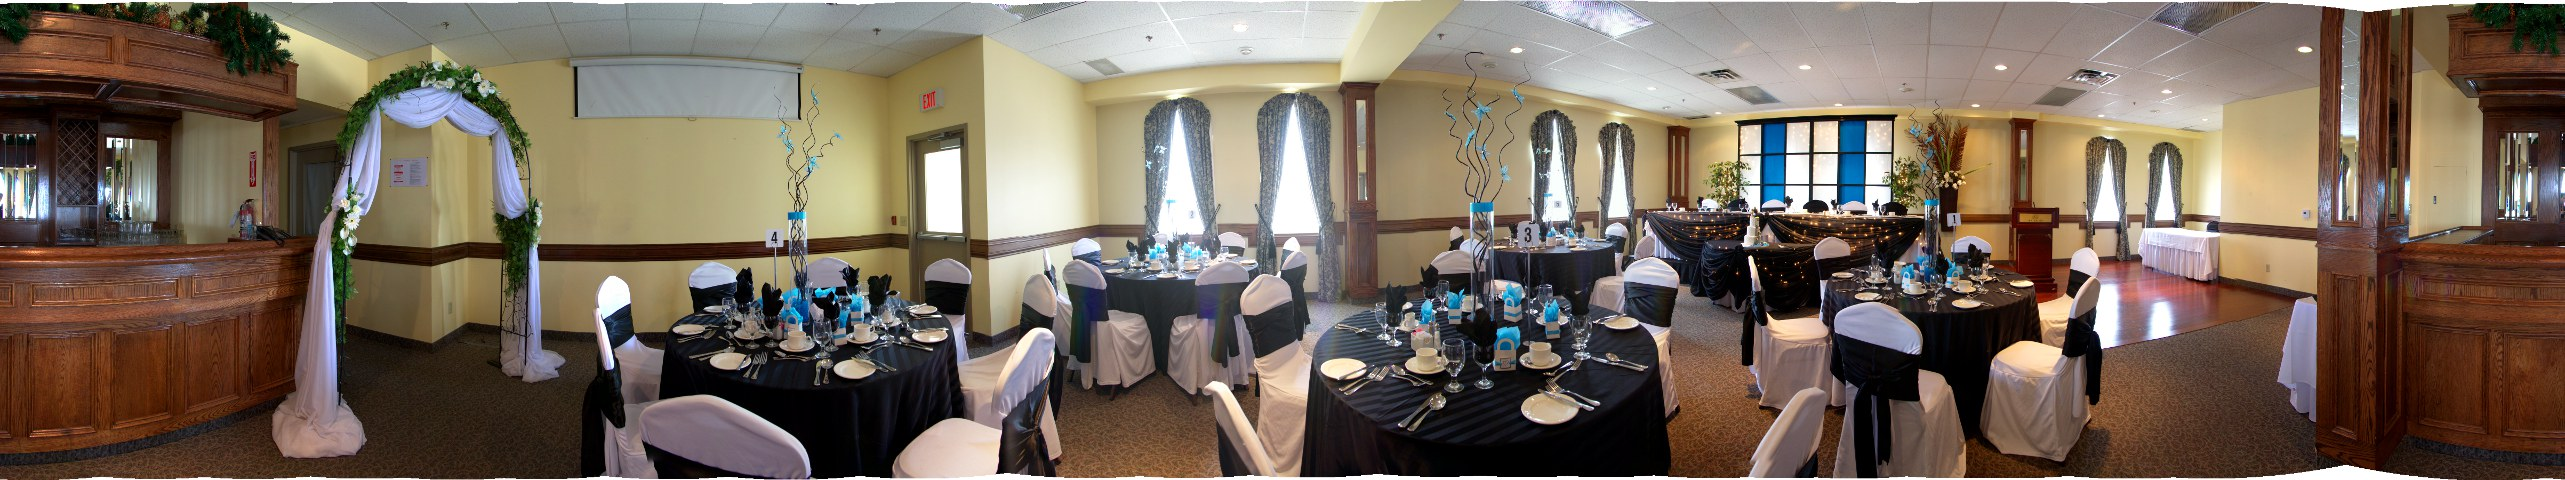 wedding reception dinner in restuarant with blue accents